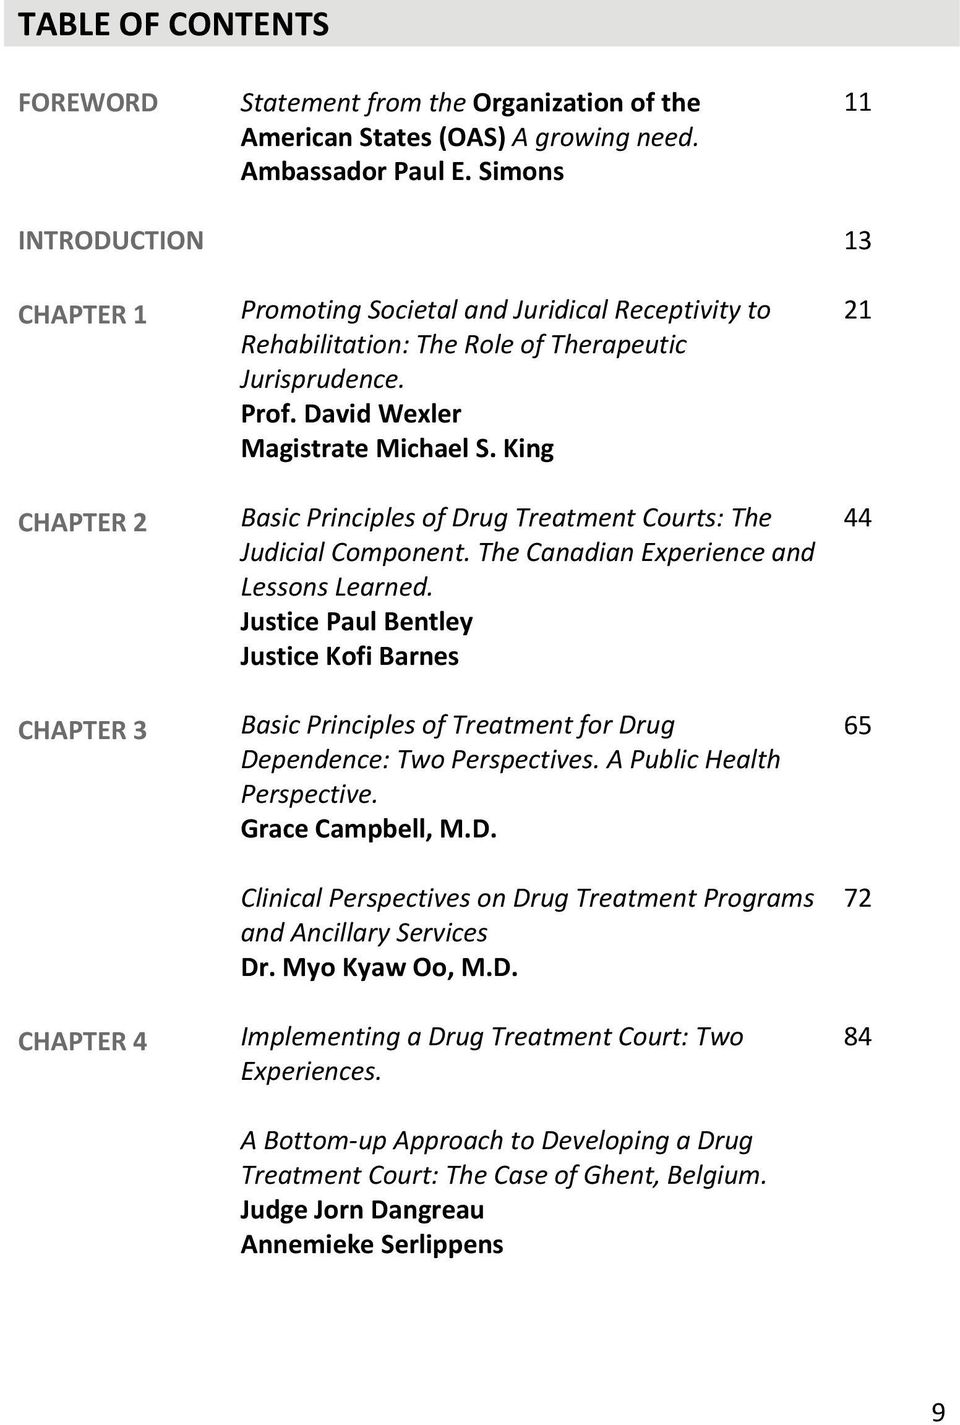 David Wexler Magistrate Michael S. King Basic Principles of Drug Treatment Courts: The Judicial Component. The Canadian Experience and Lessons Learned.